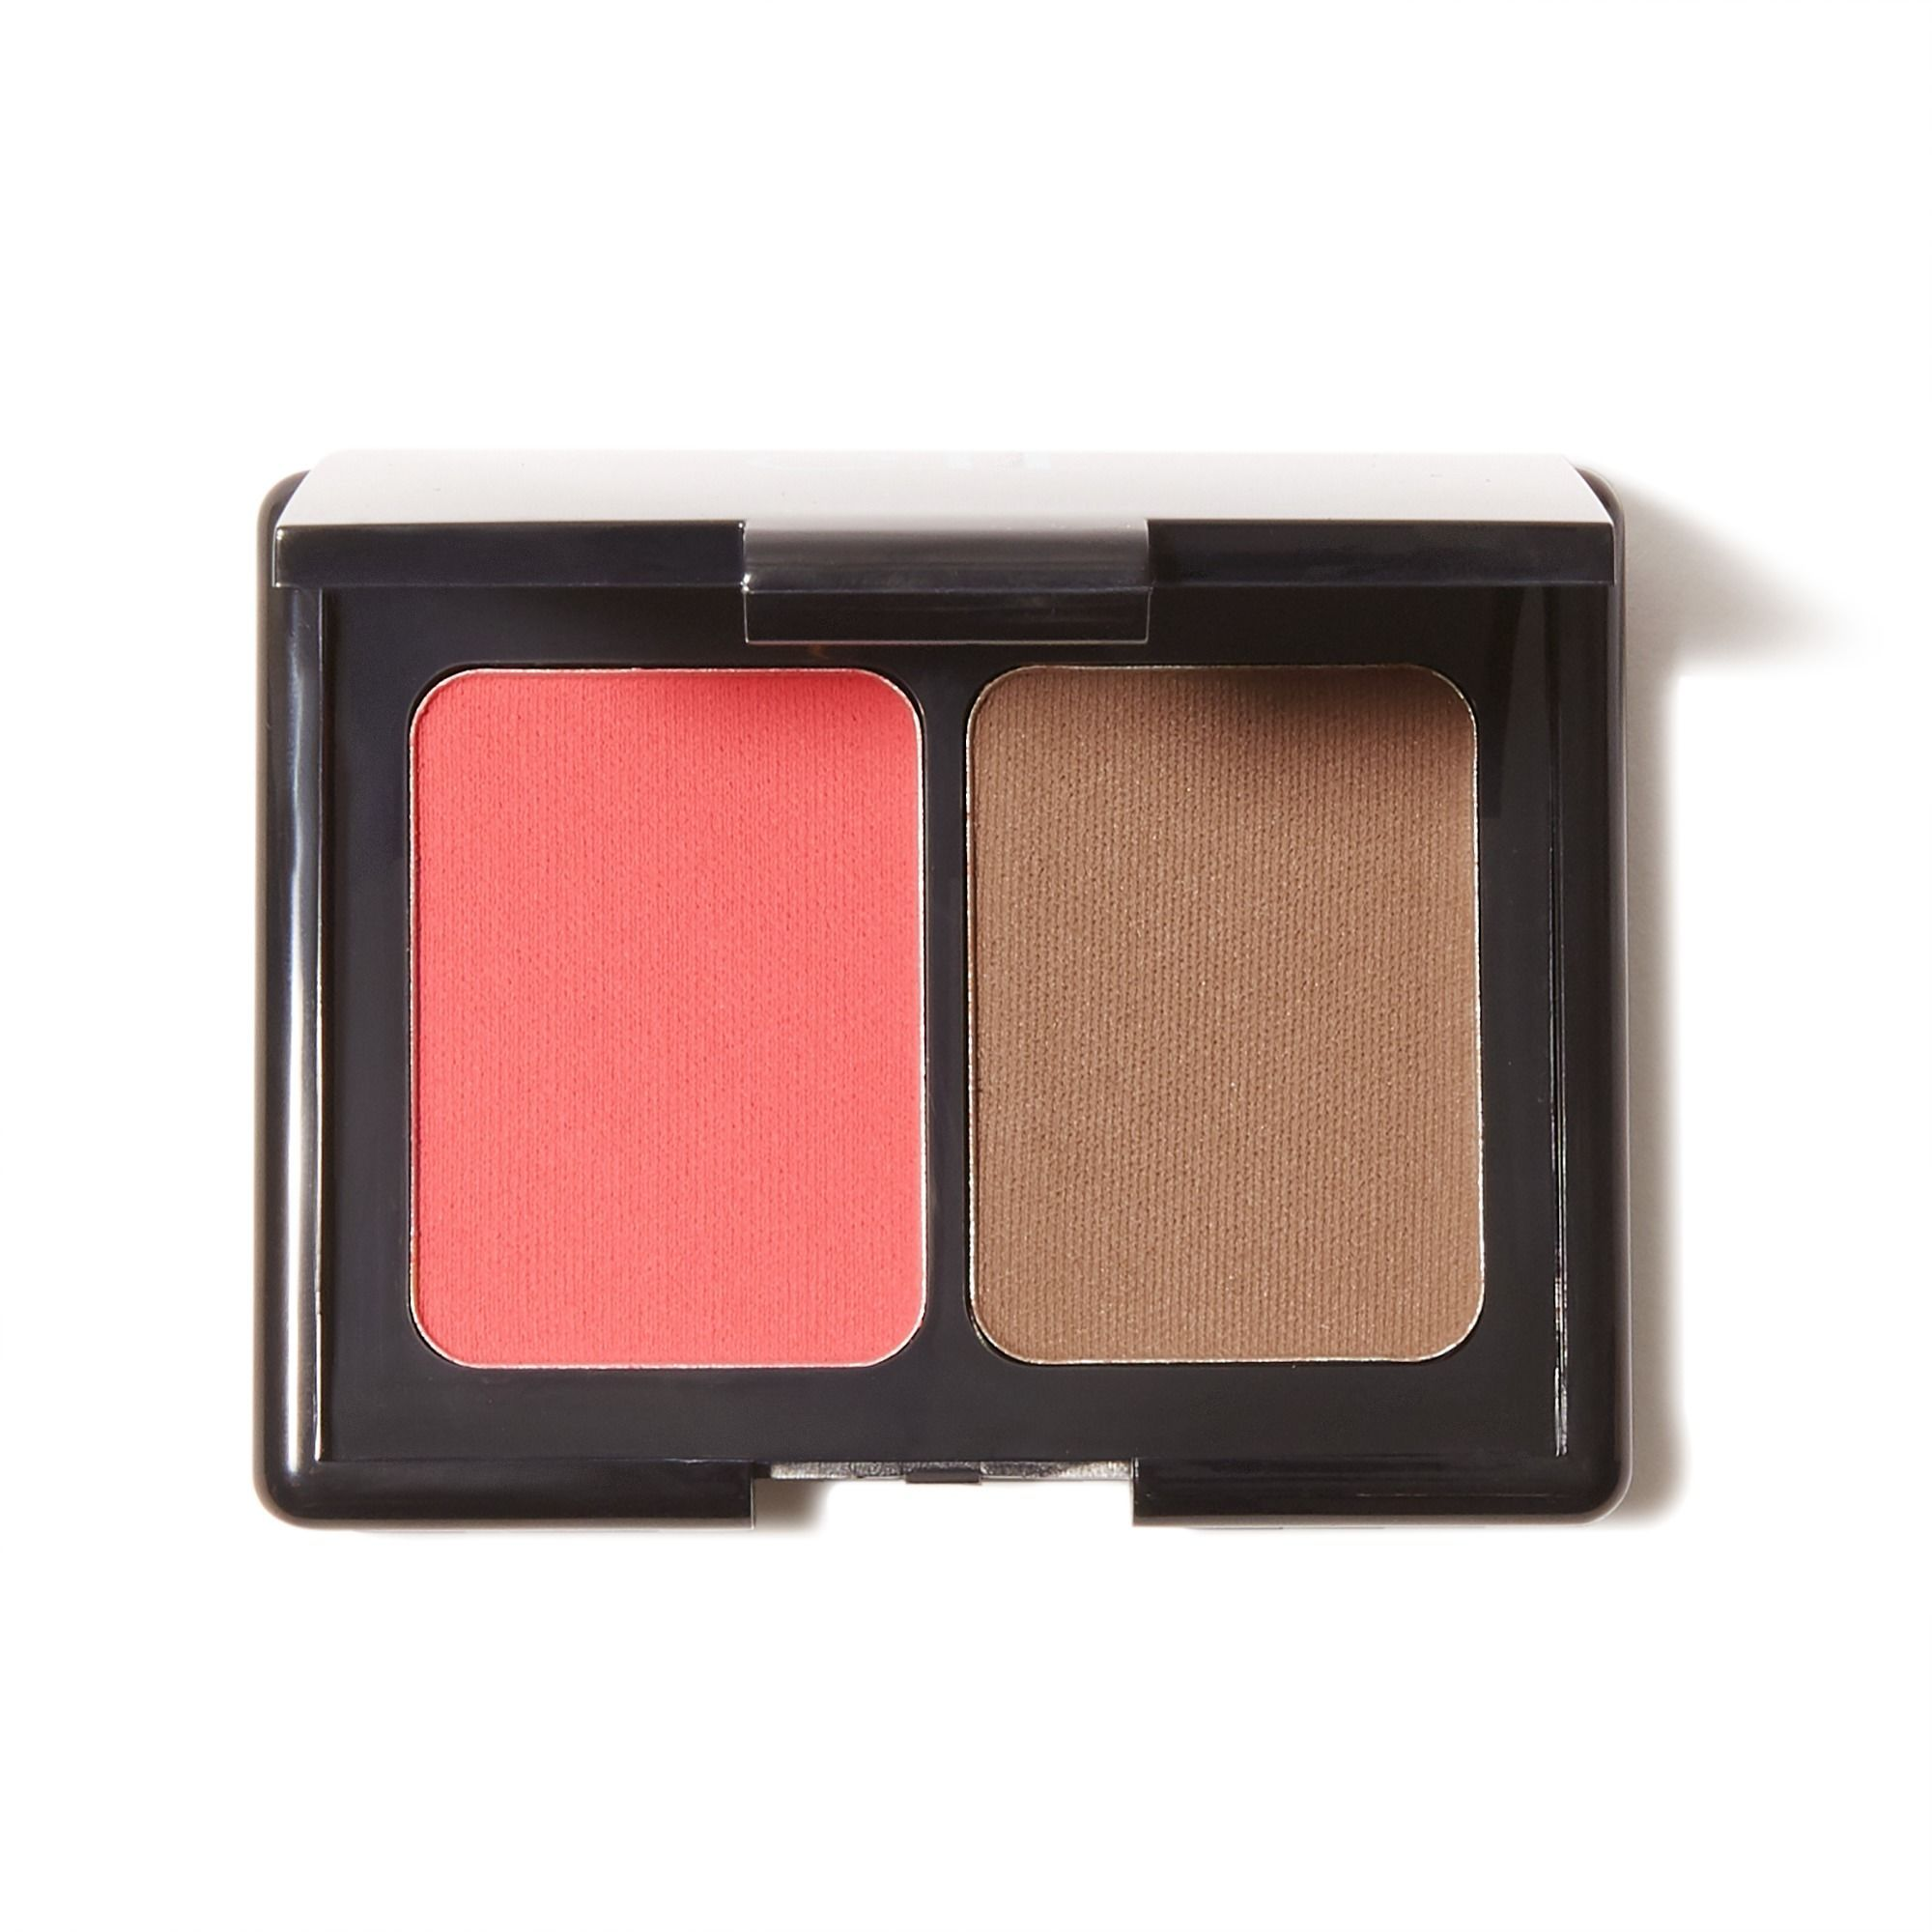 Aqua Beauty Blush & Bronzer (With images) Cruelty free